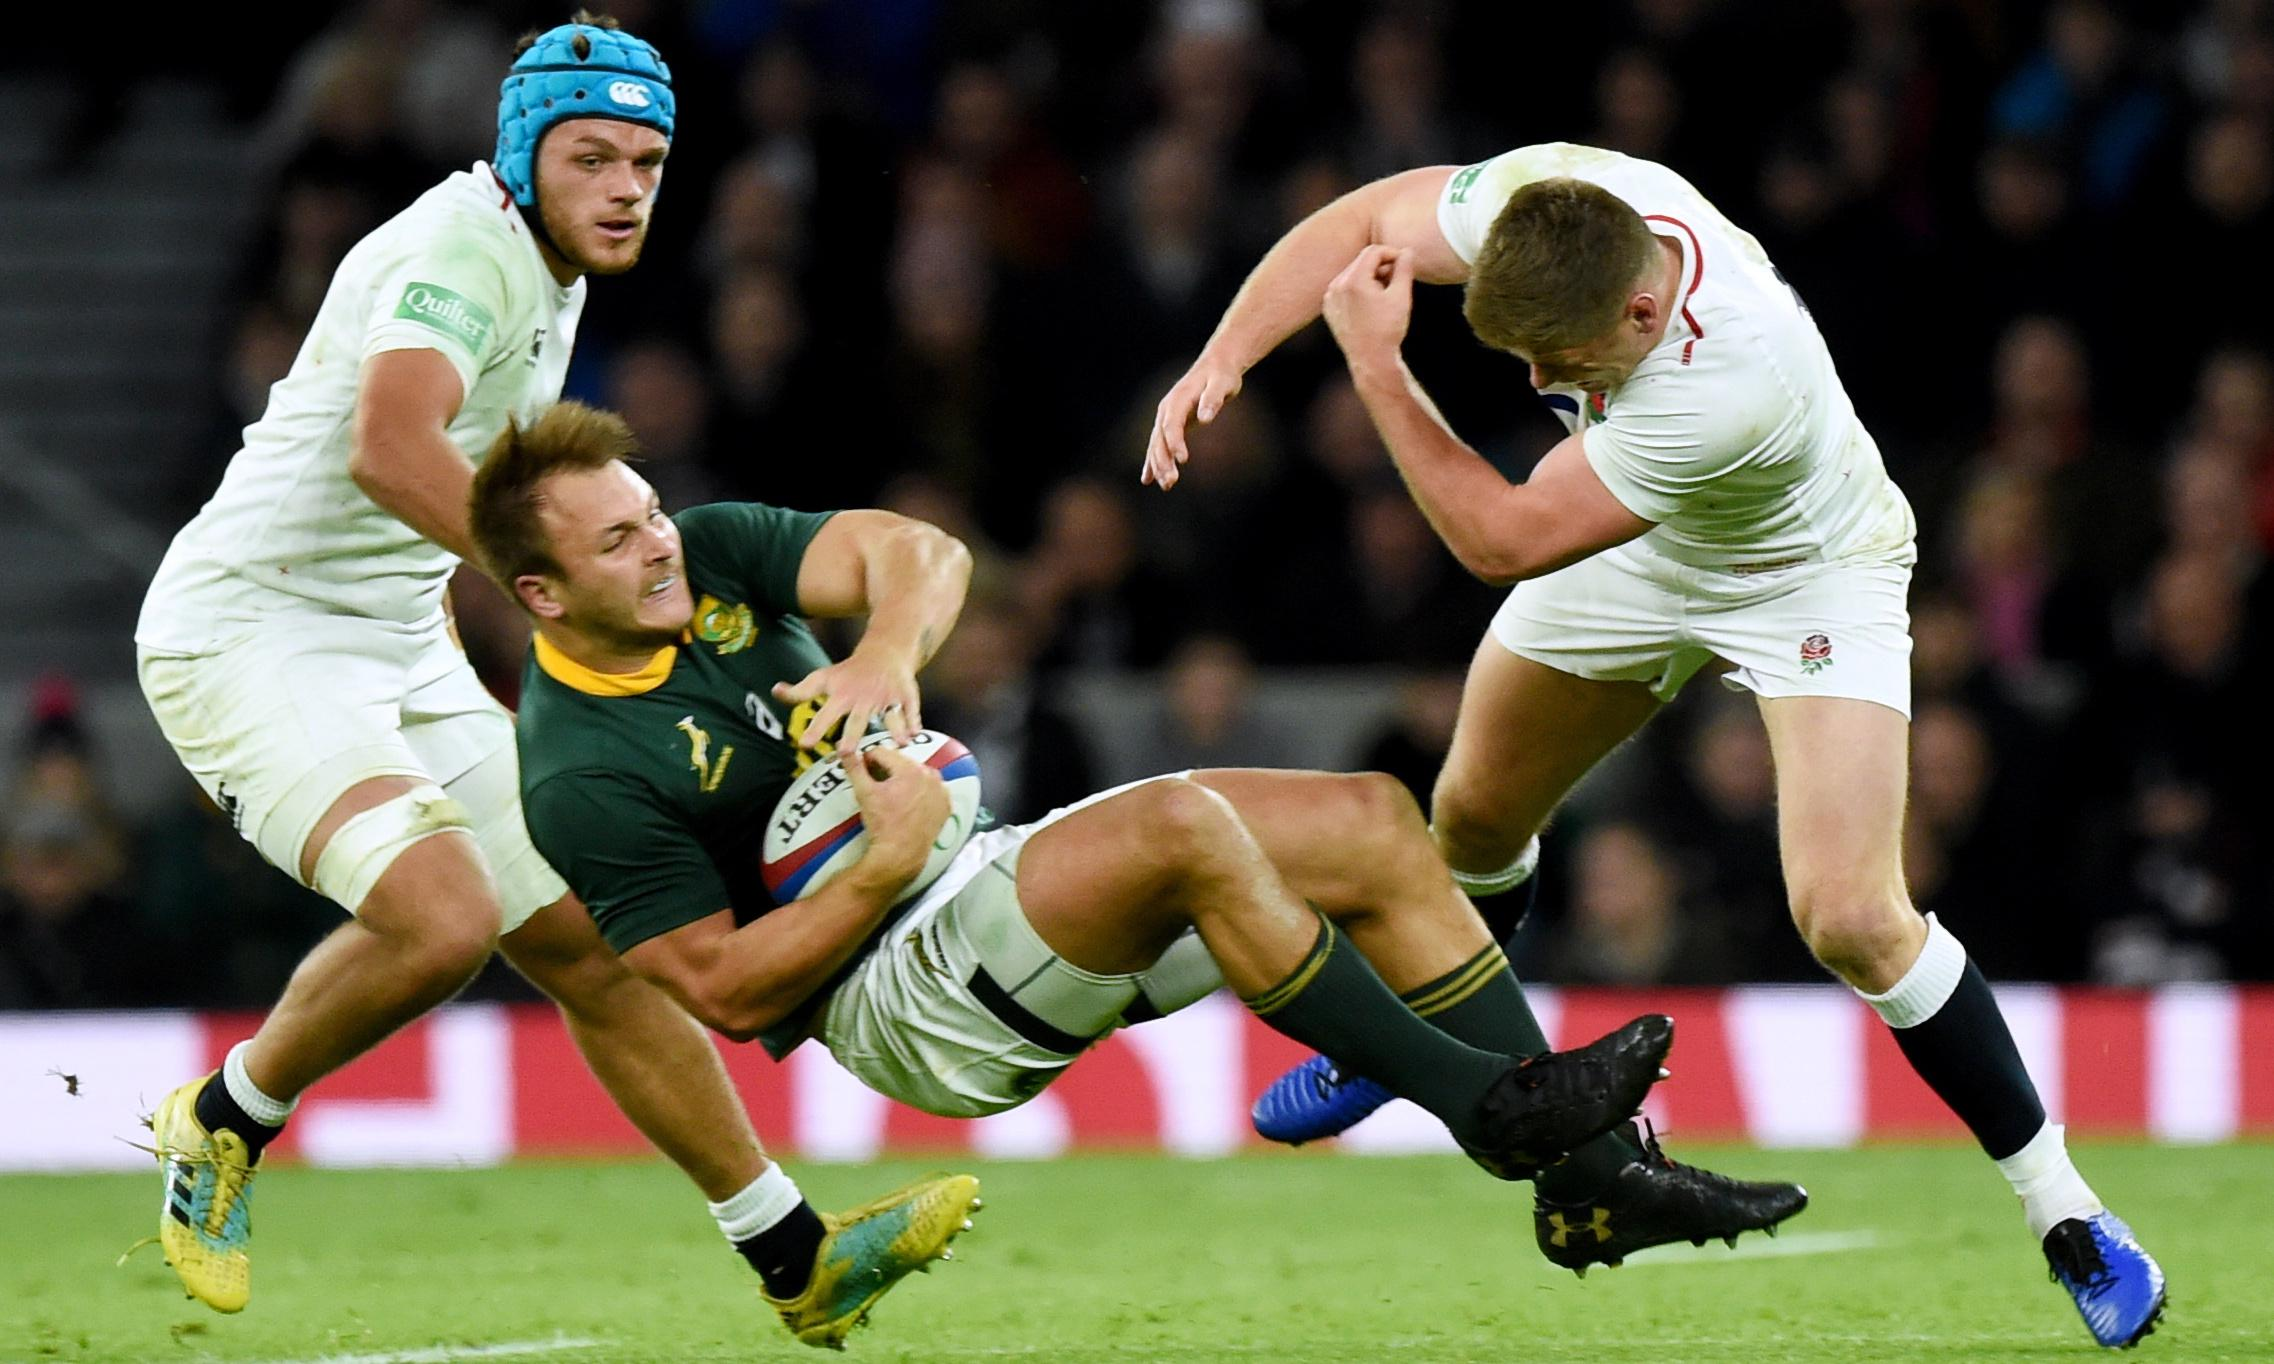 Furore over Owen Farrell's big hit leads to call for refereeing consistency